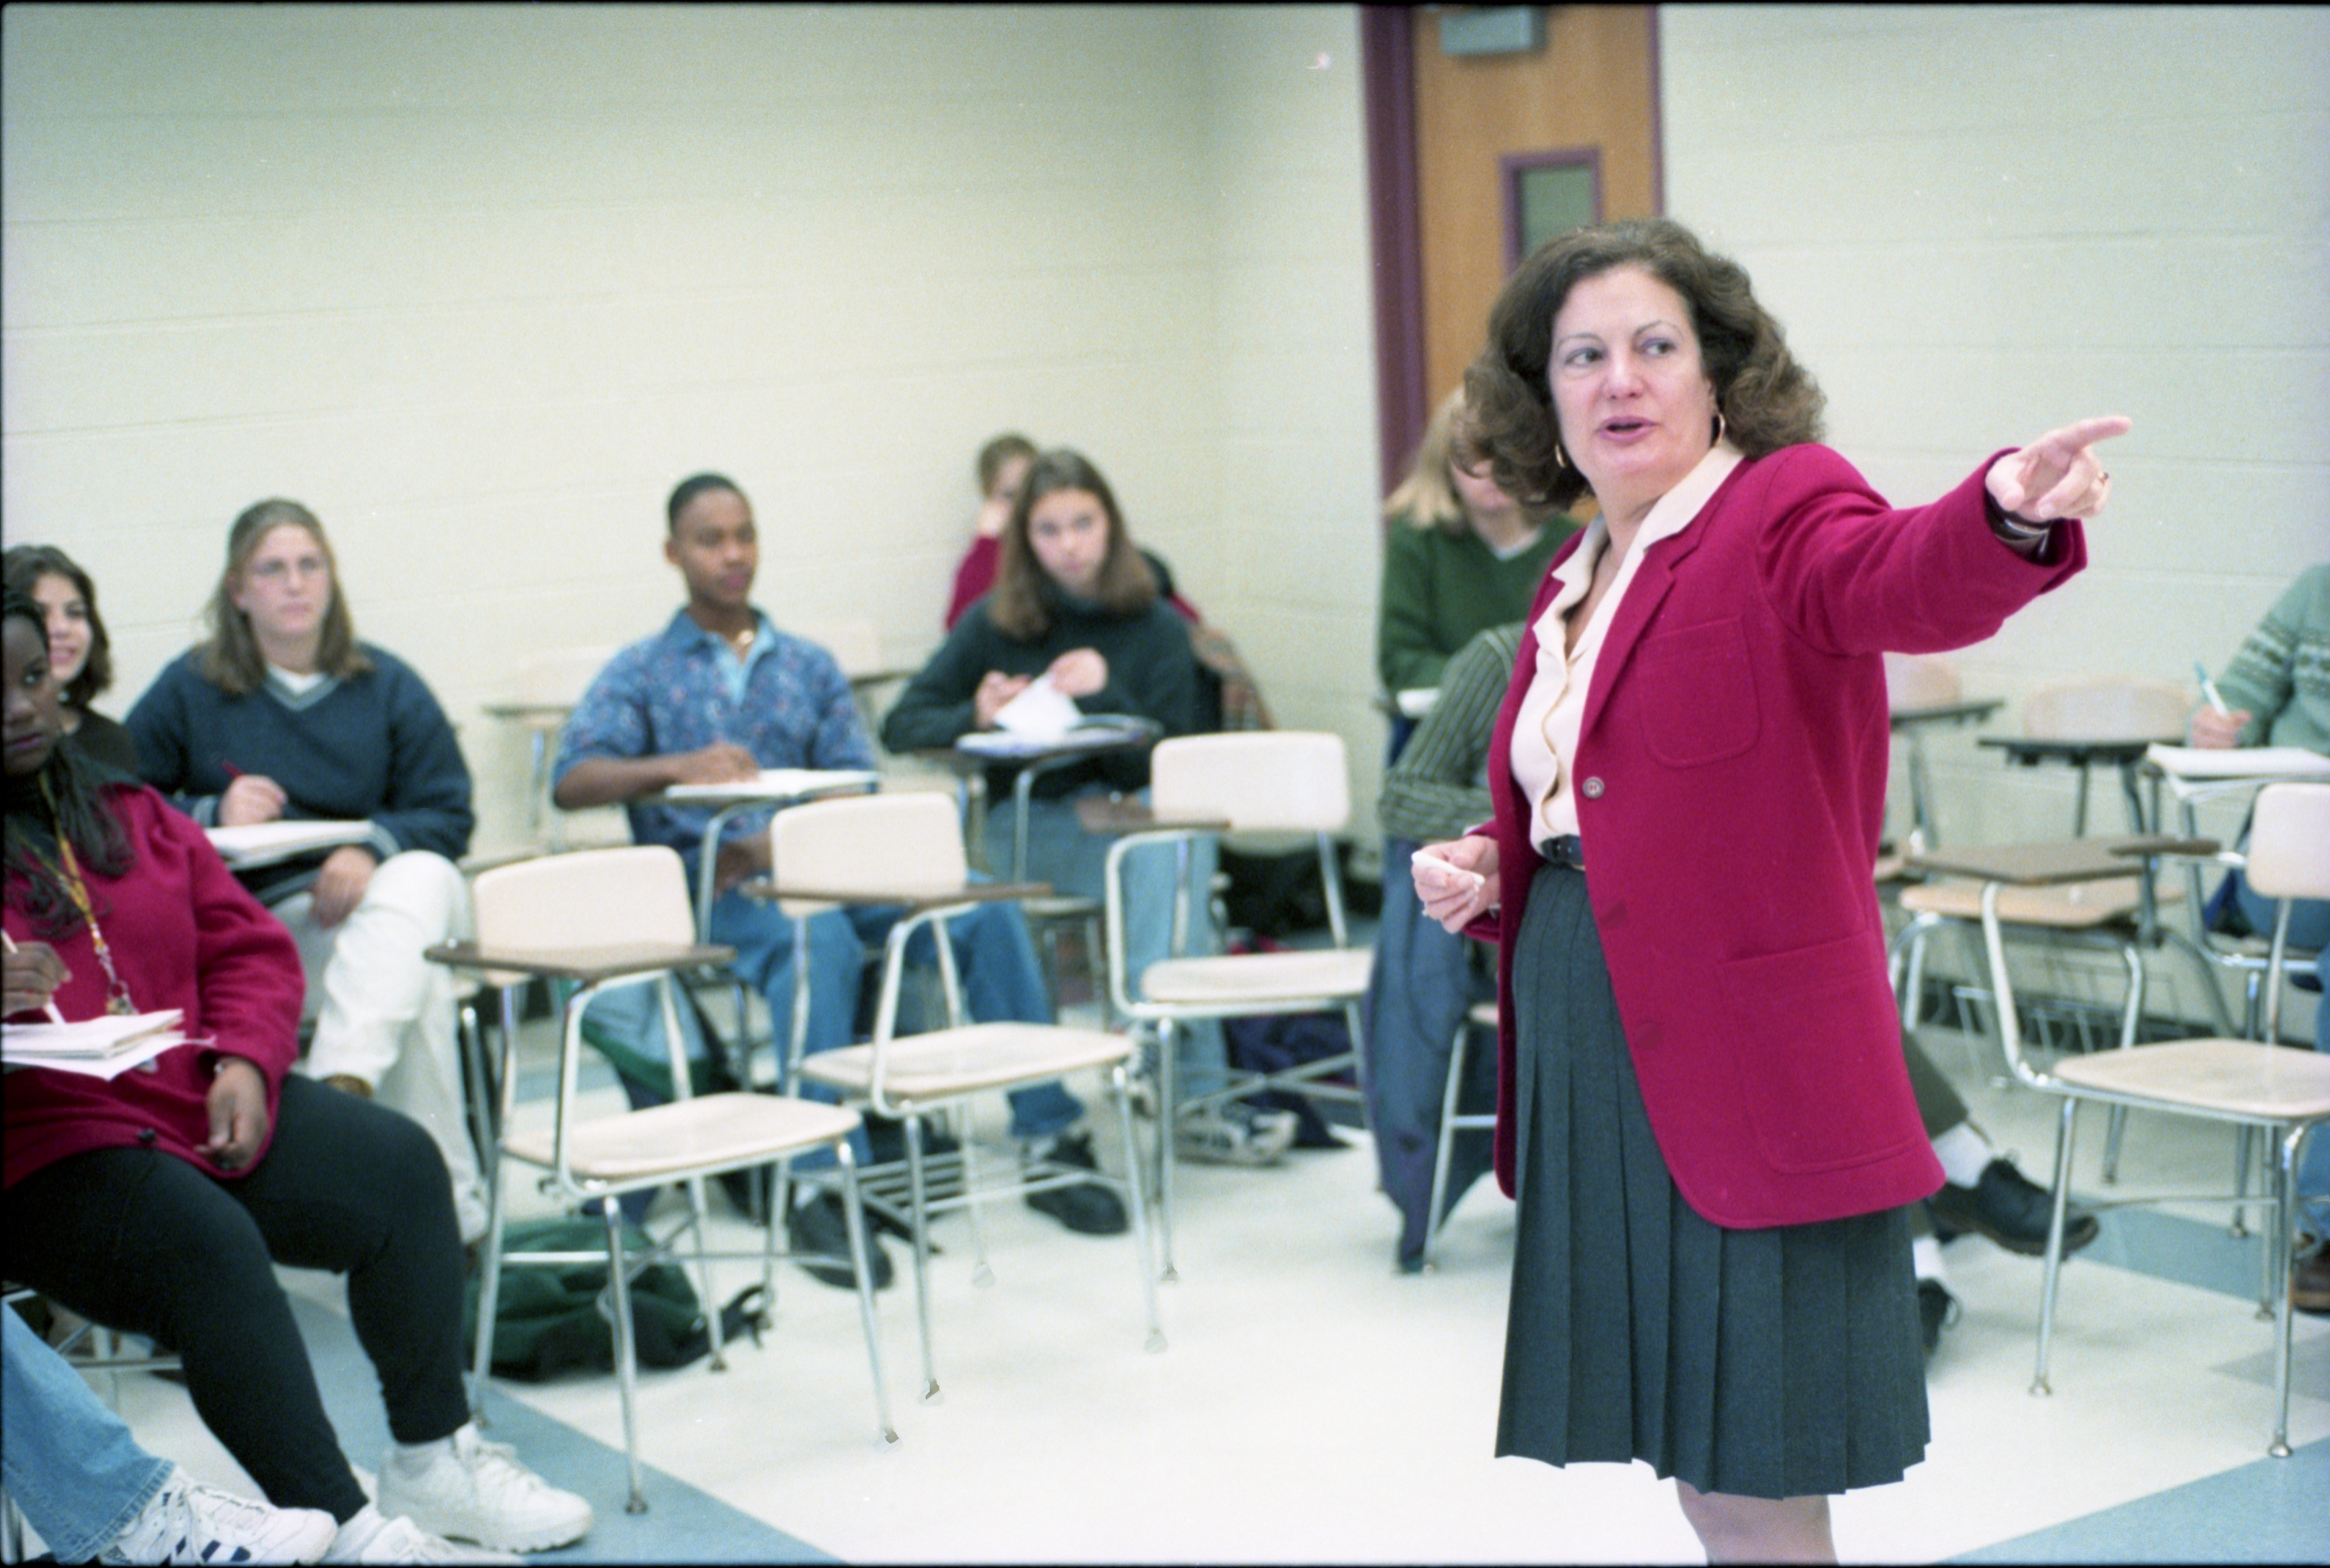 Dr. Silvia Pedraza, U-M Professor Teaches Class, November 16, 1997 image